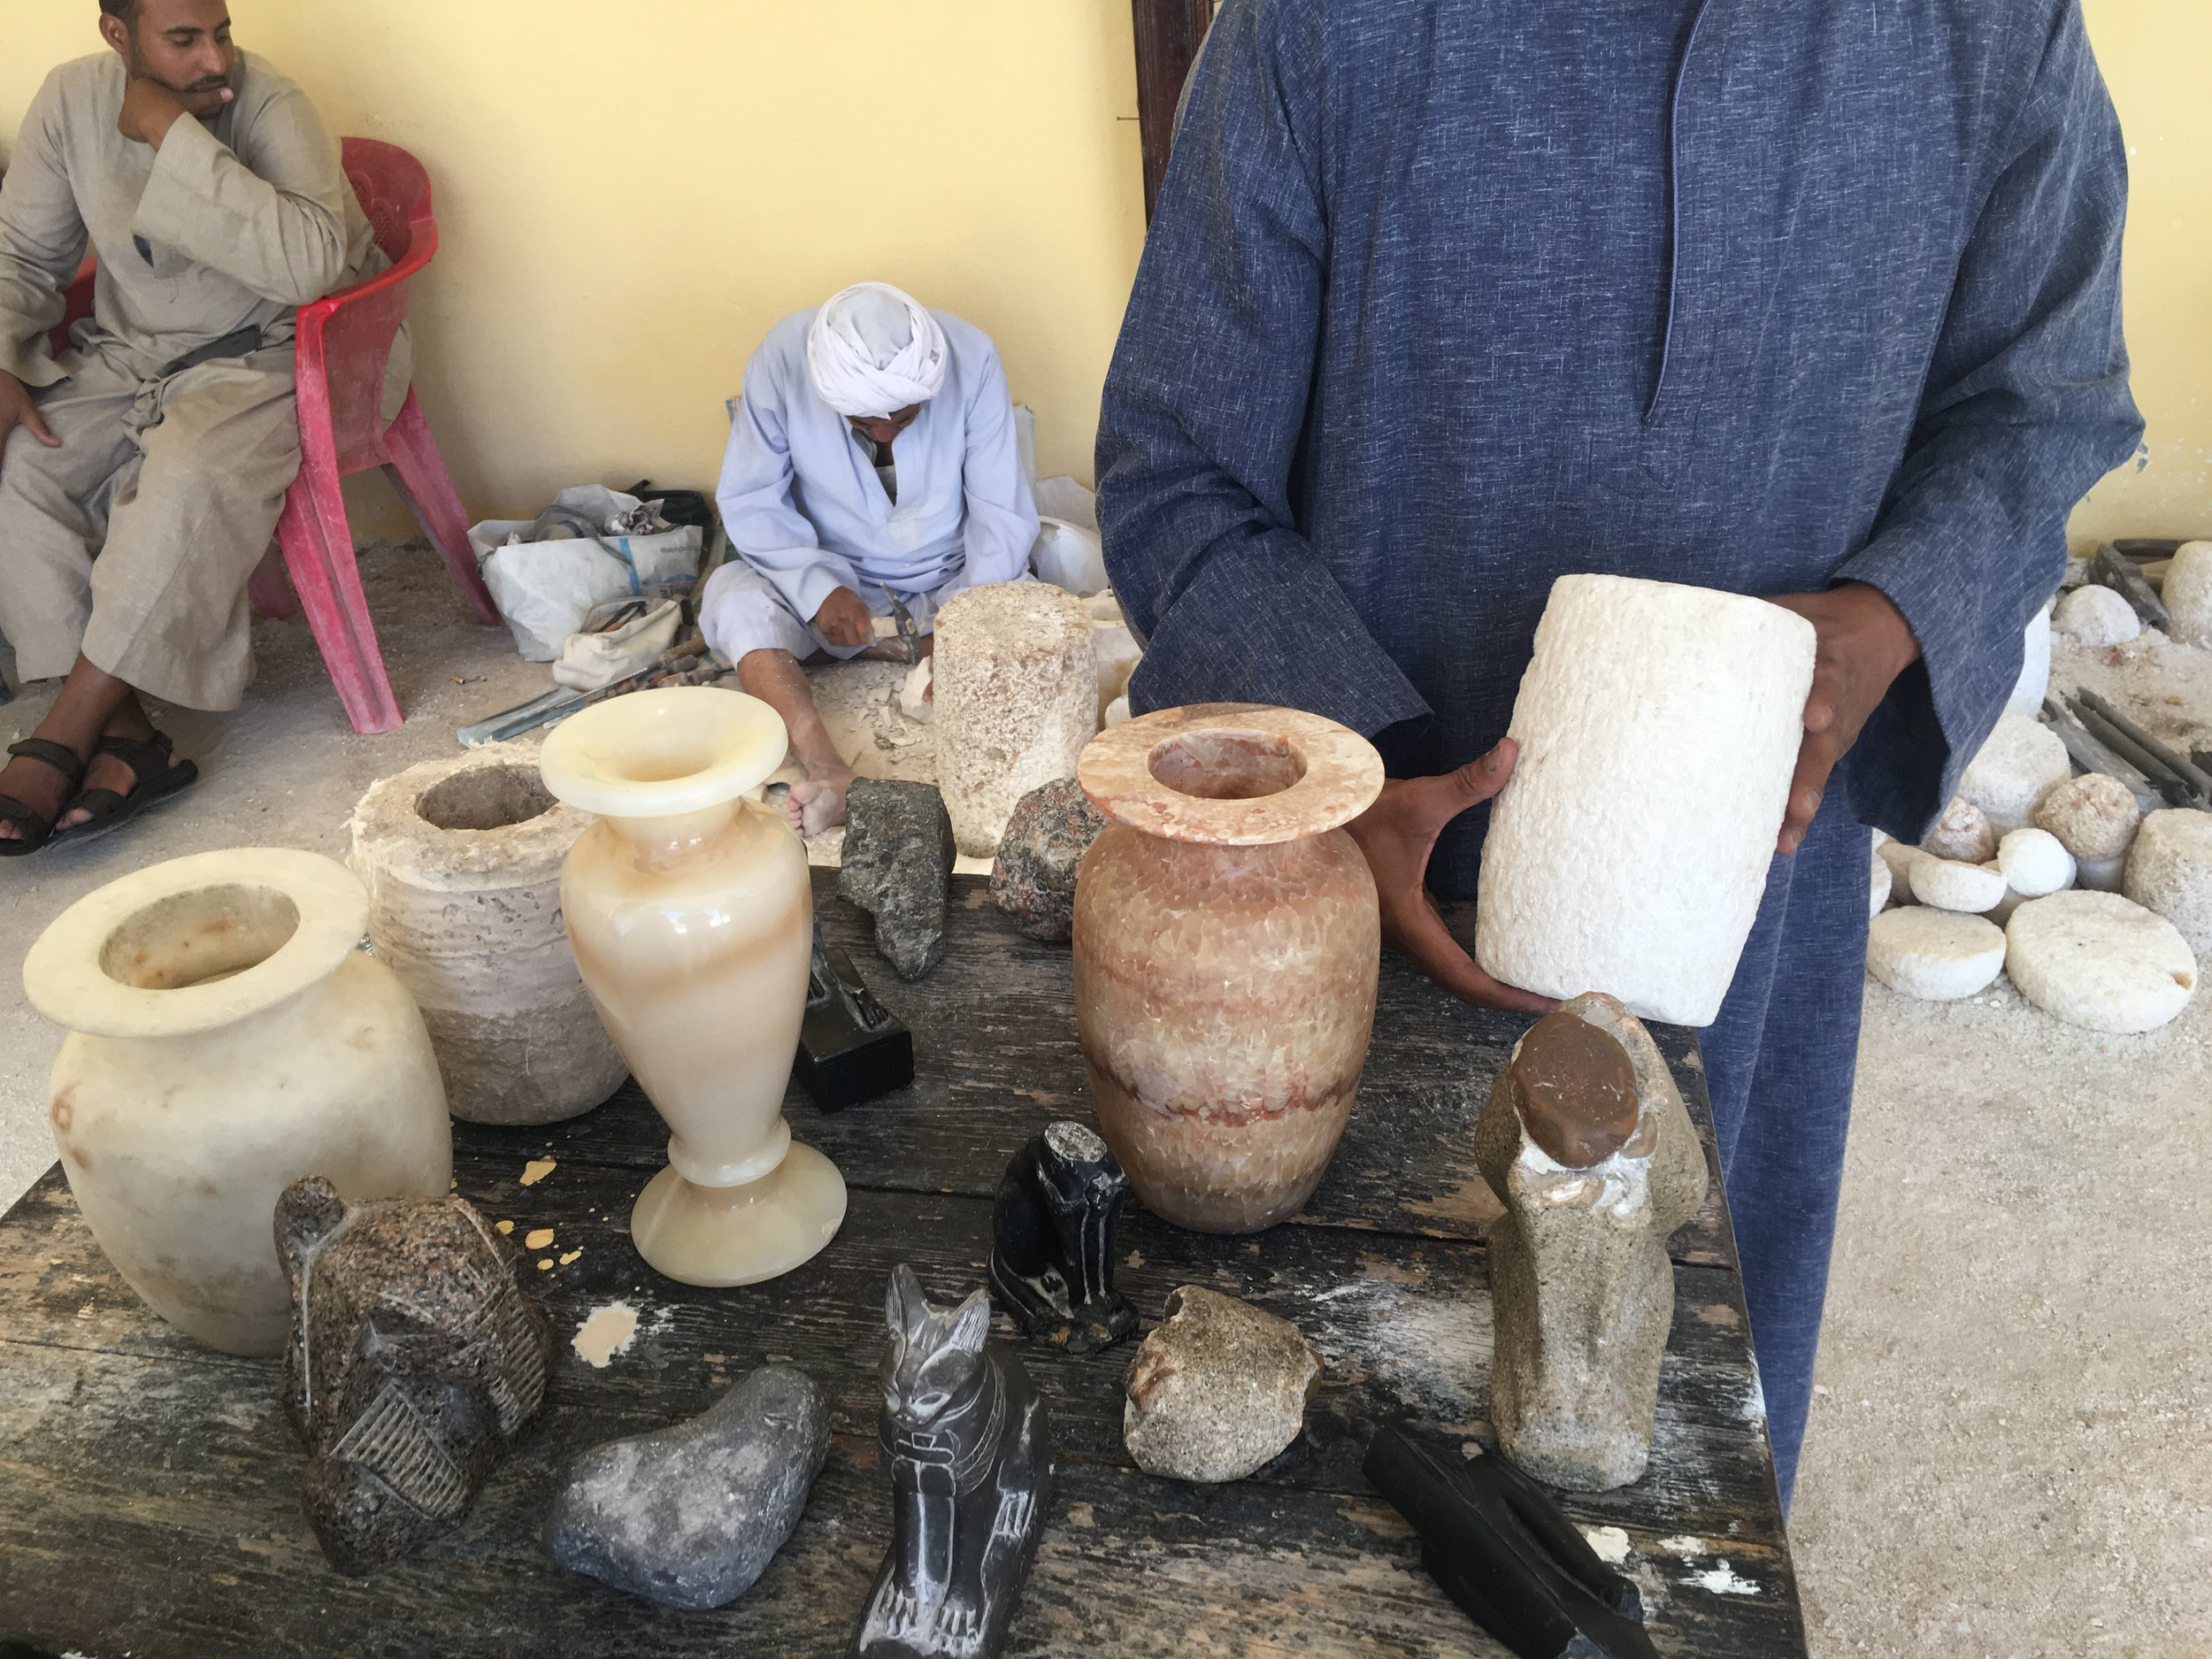 The small statues in the front are carved from basalt but the vases are alabaster and all but the narrow shiny one have been carved by hand. The alabaster carving business has been passed down through generations for centuries in Egypt.